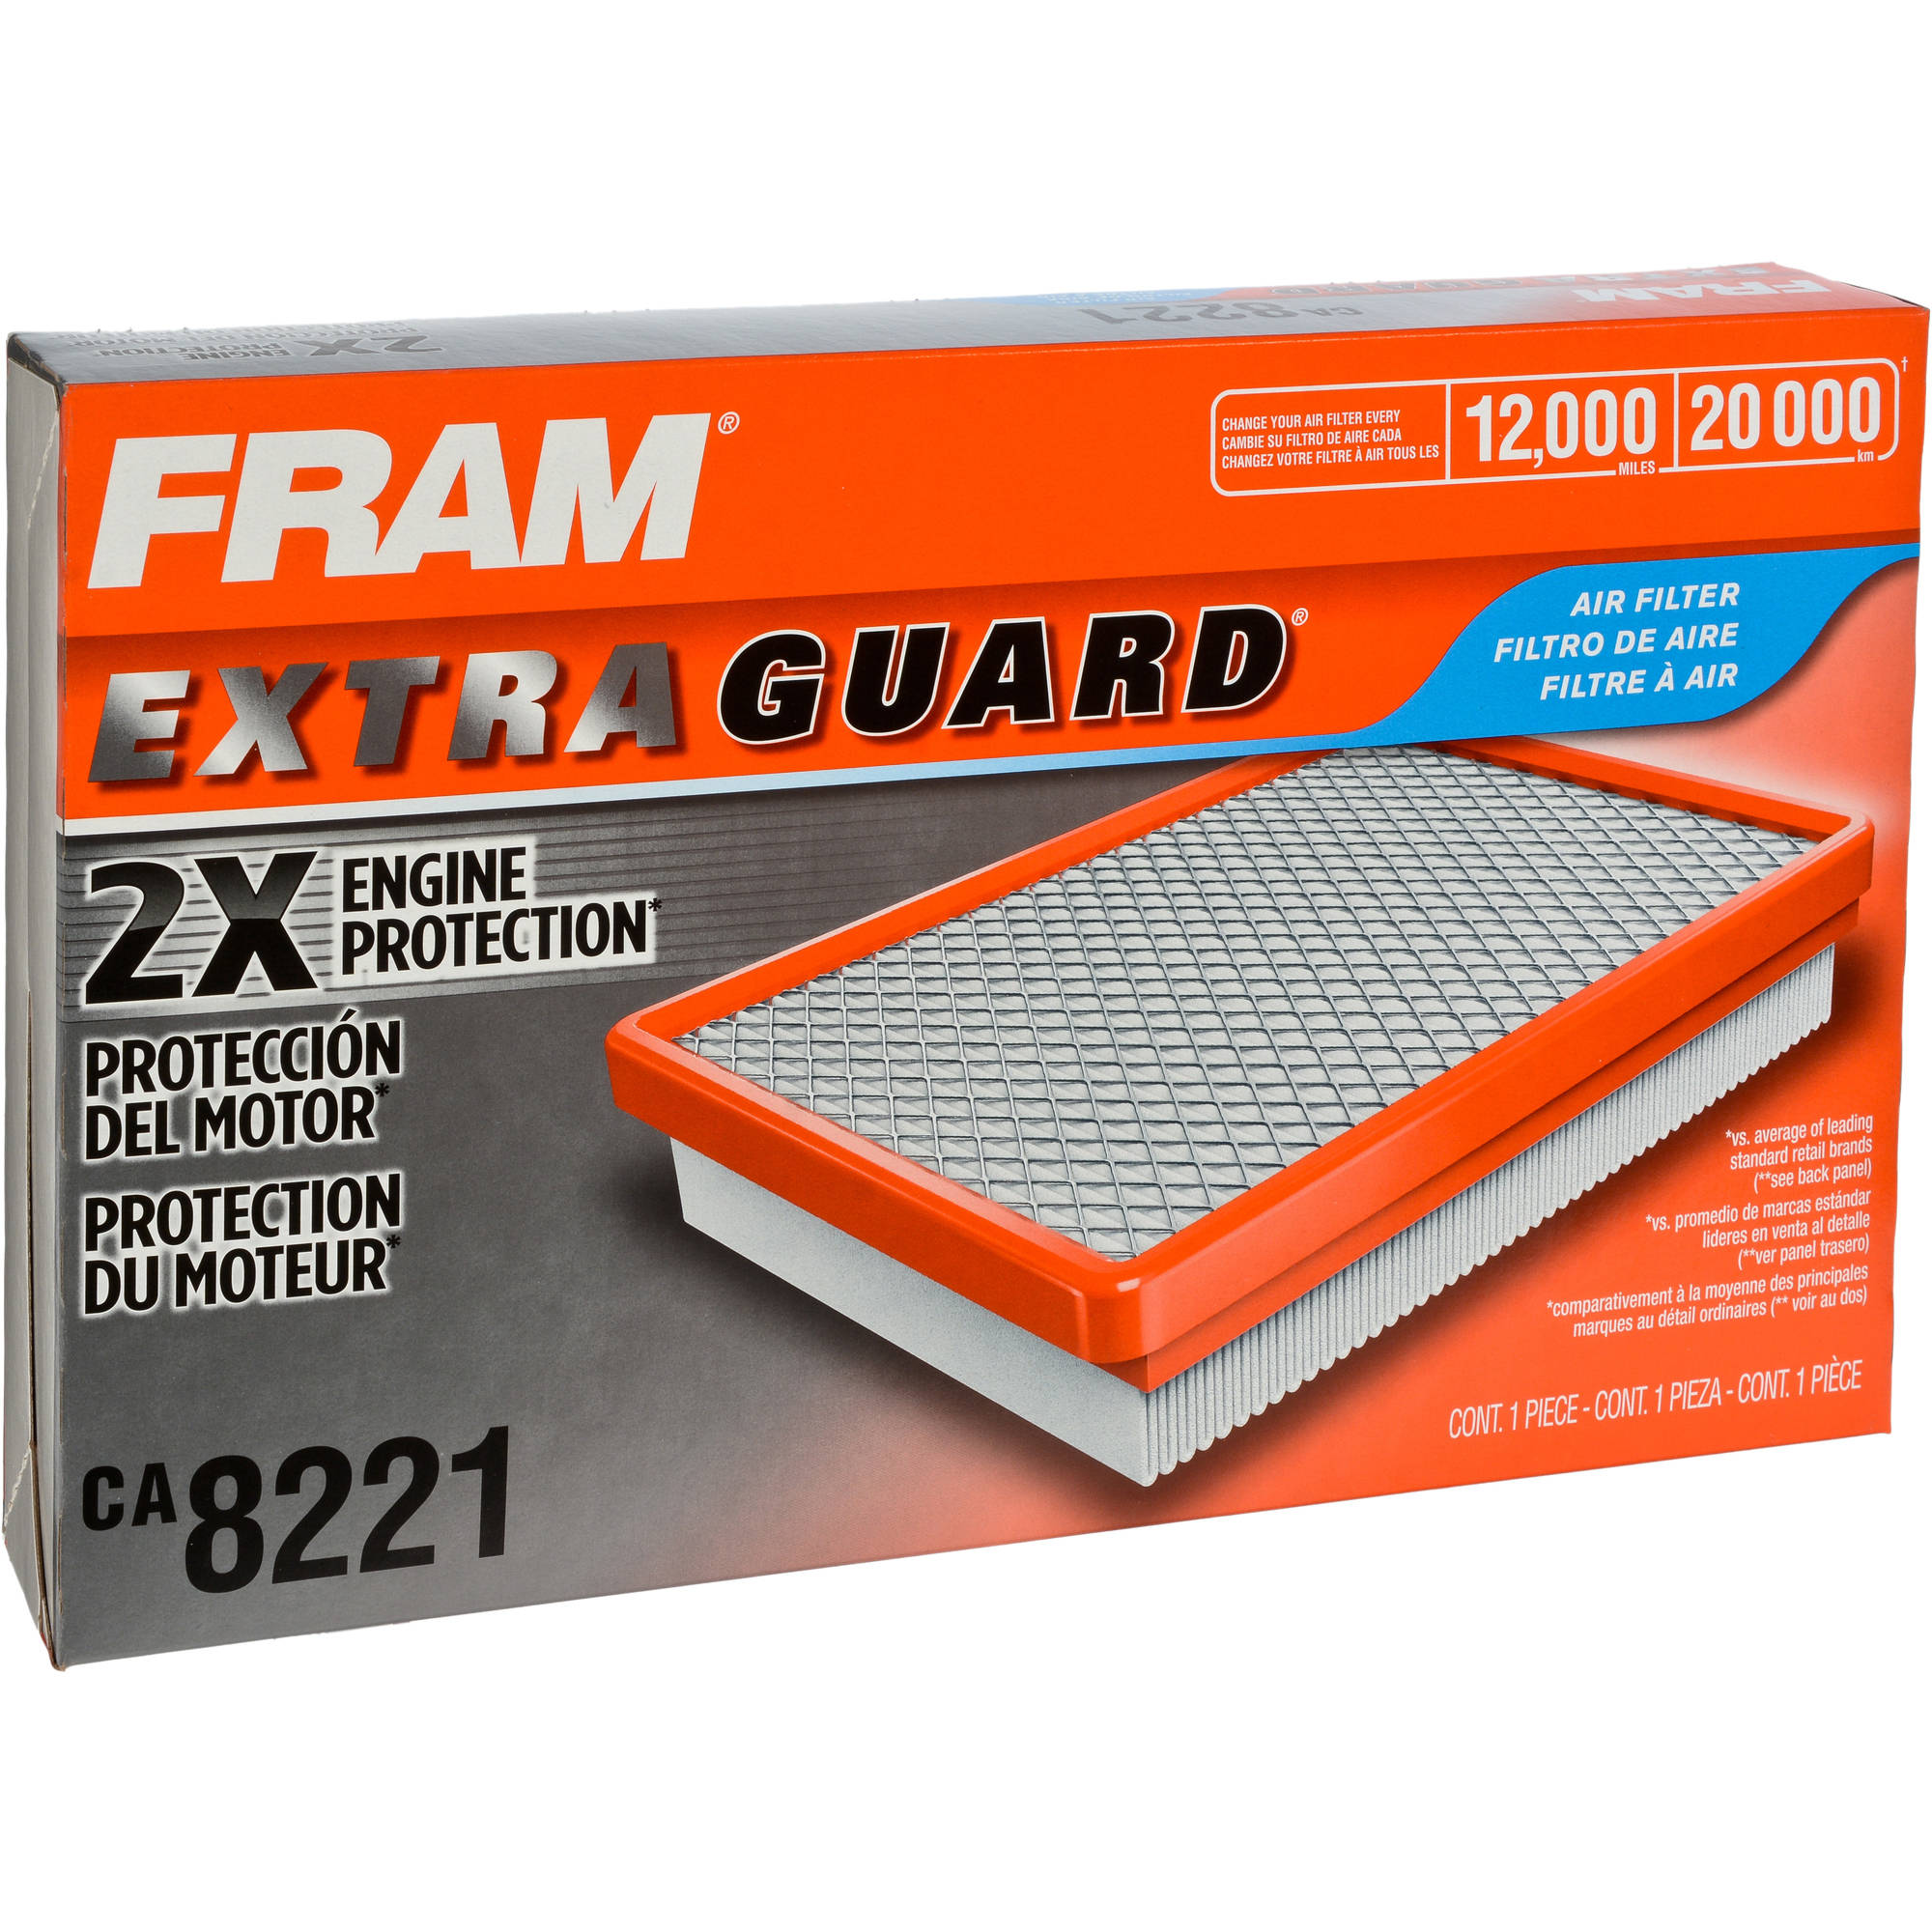 FRAM Extra Guard Air Filter, CA8221